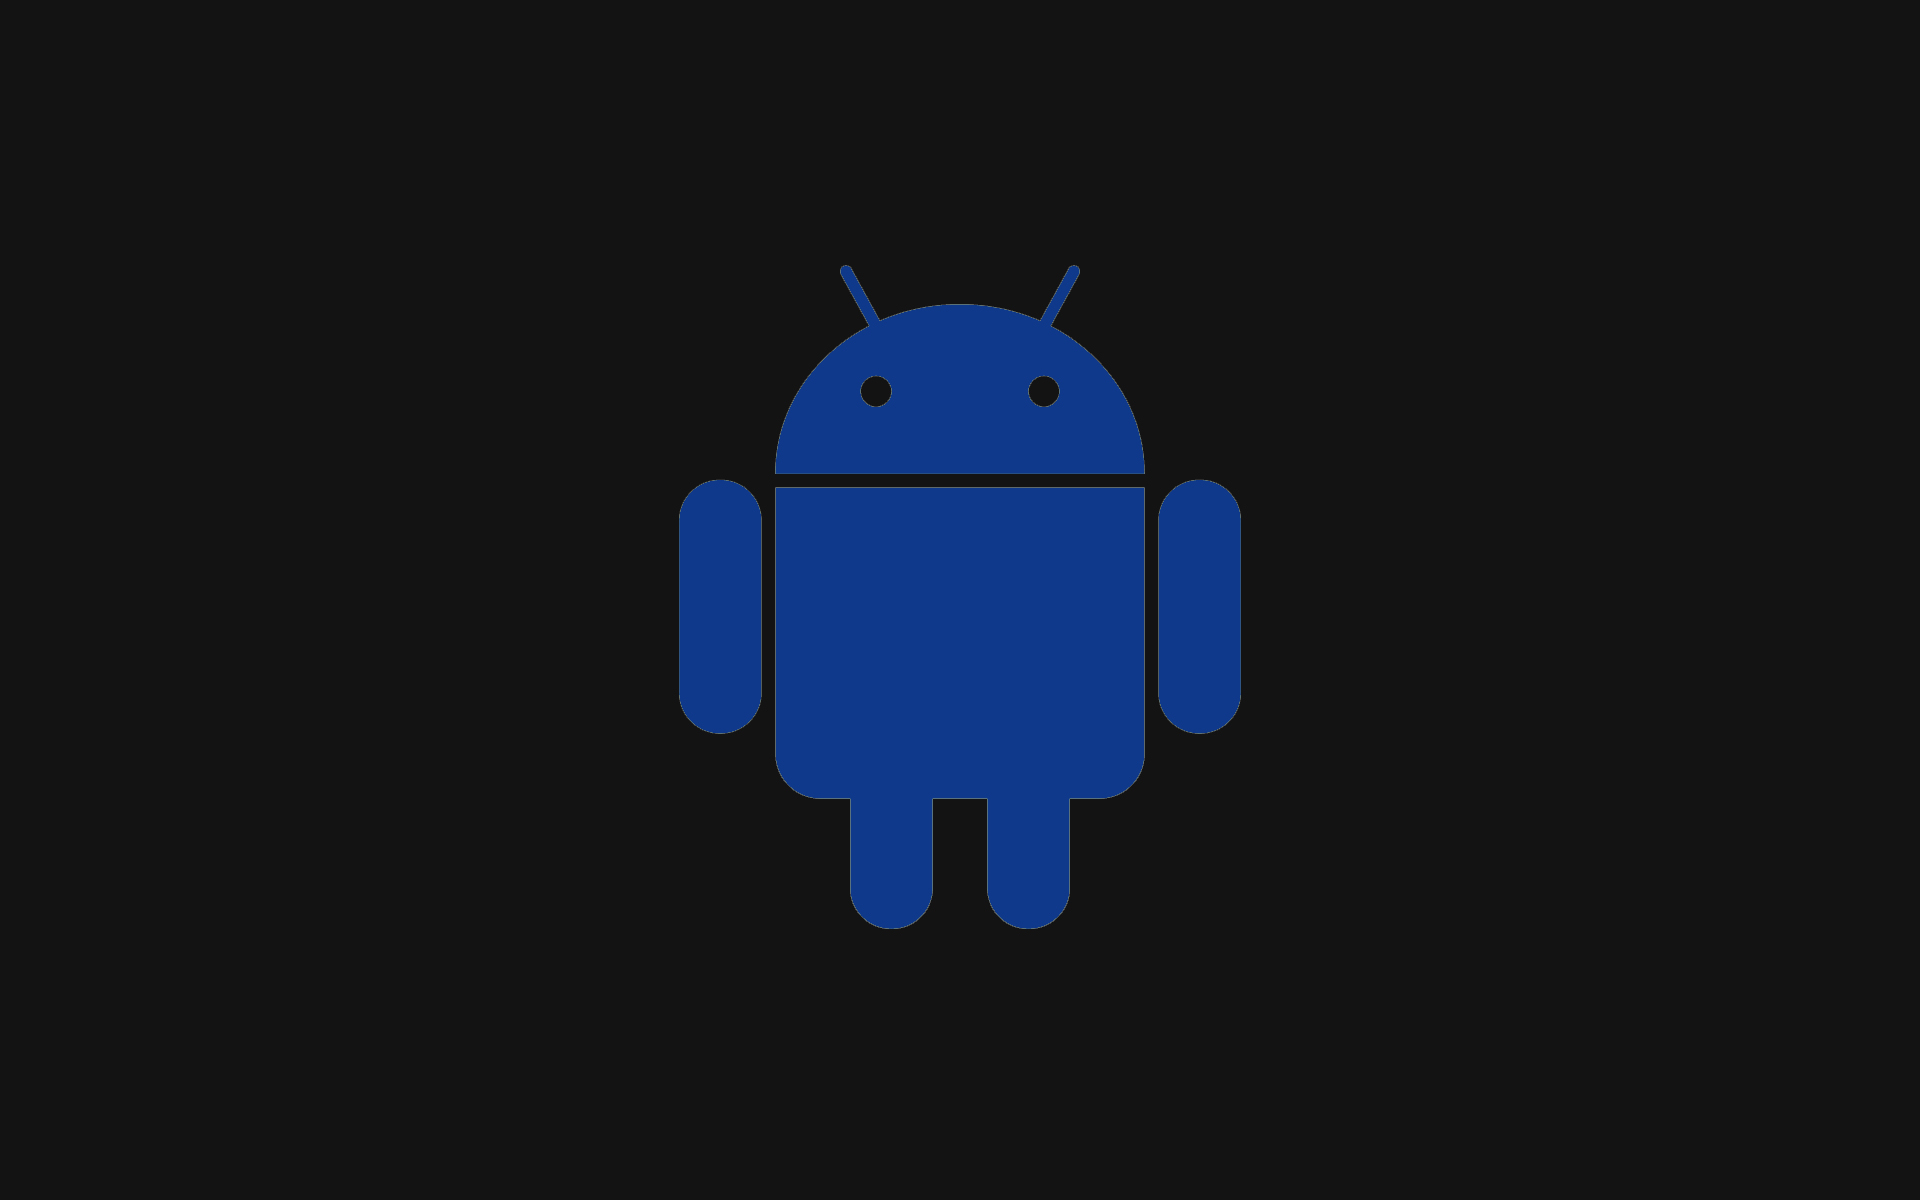 Blue Android And Black Background Wallpaper De 6581 1920x1200